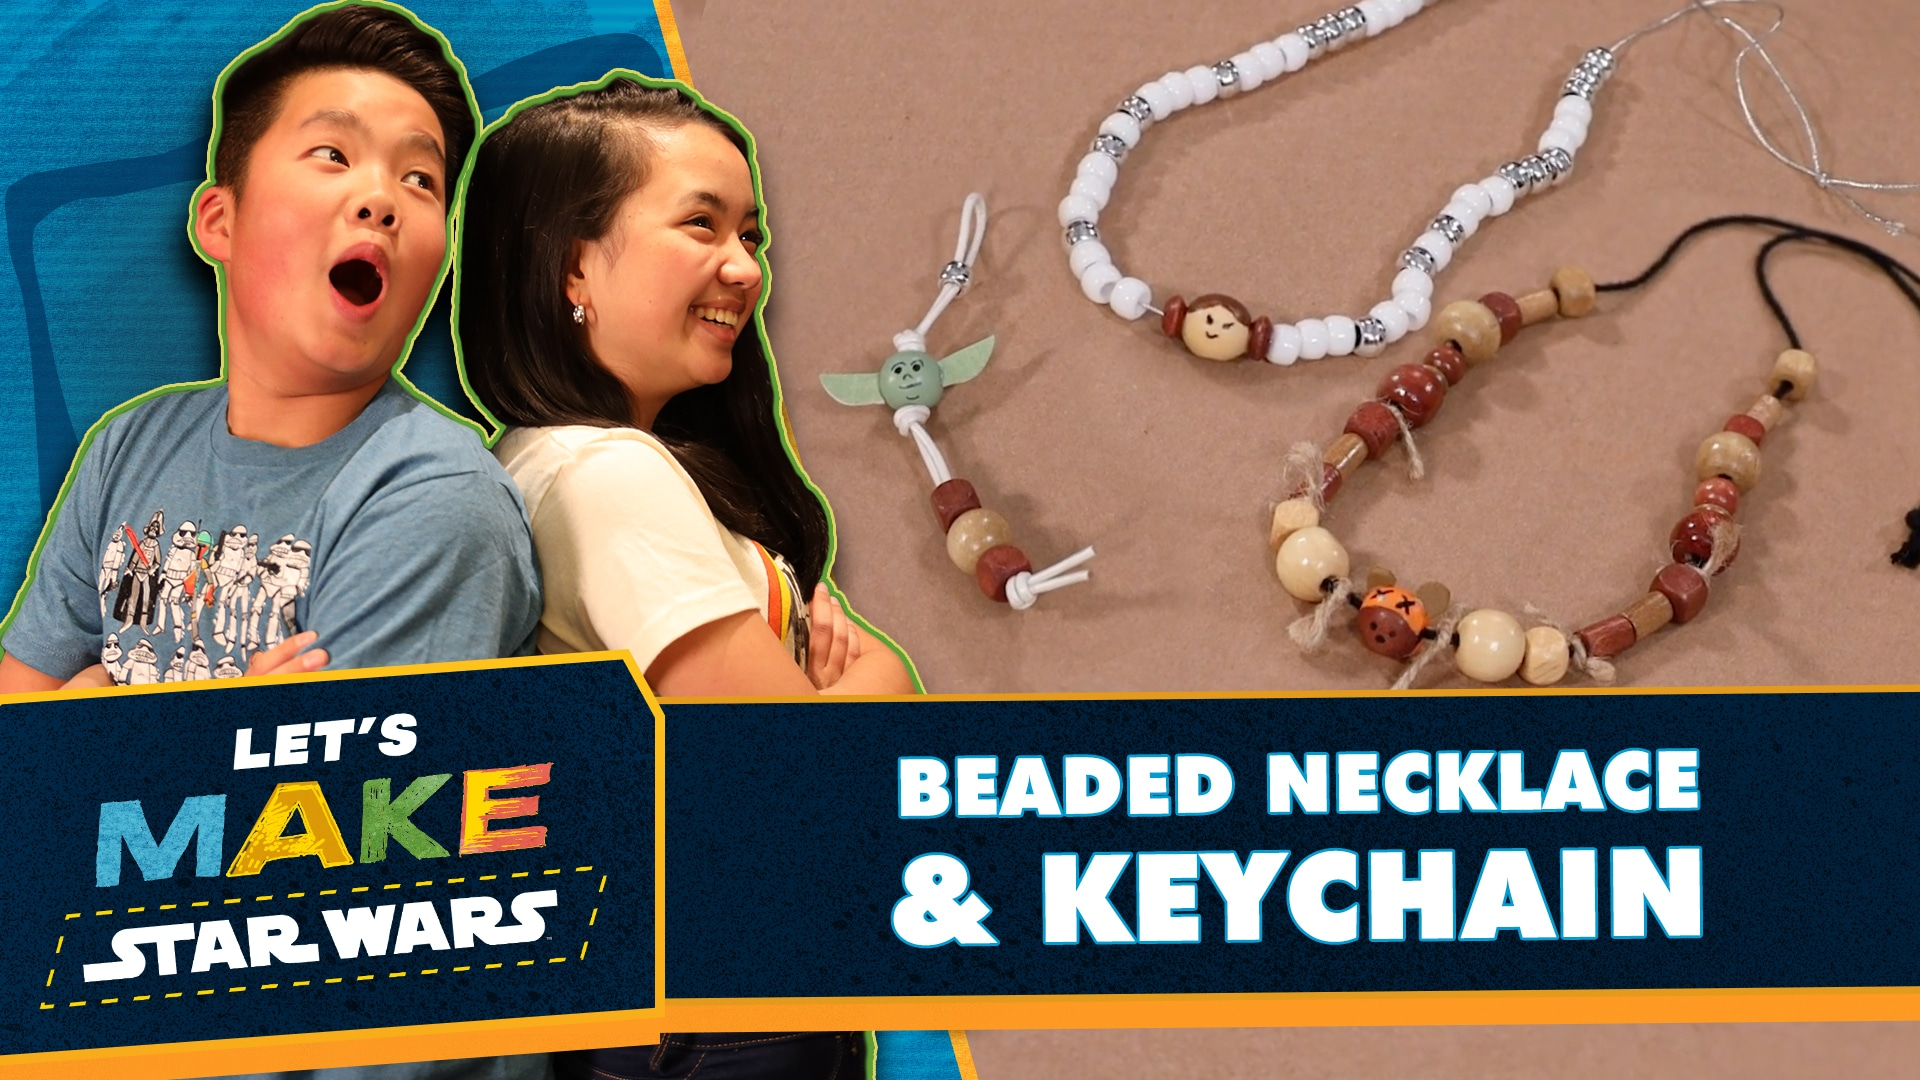 How to Make a Beaded Necklace and Keychain | Let's Make Star Wars